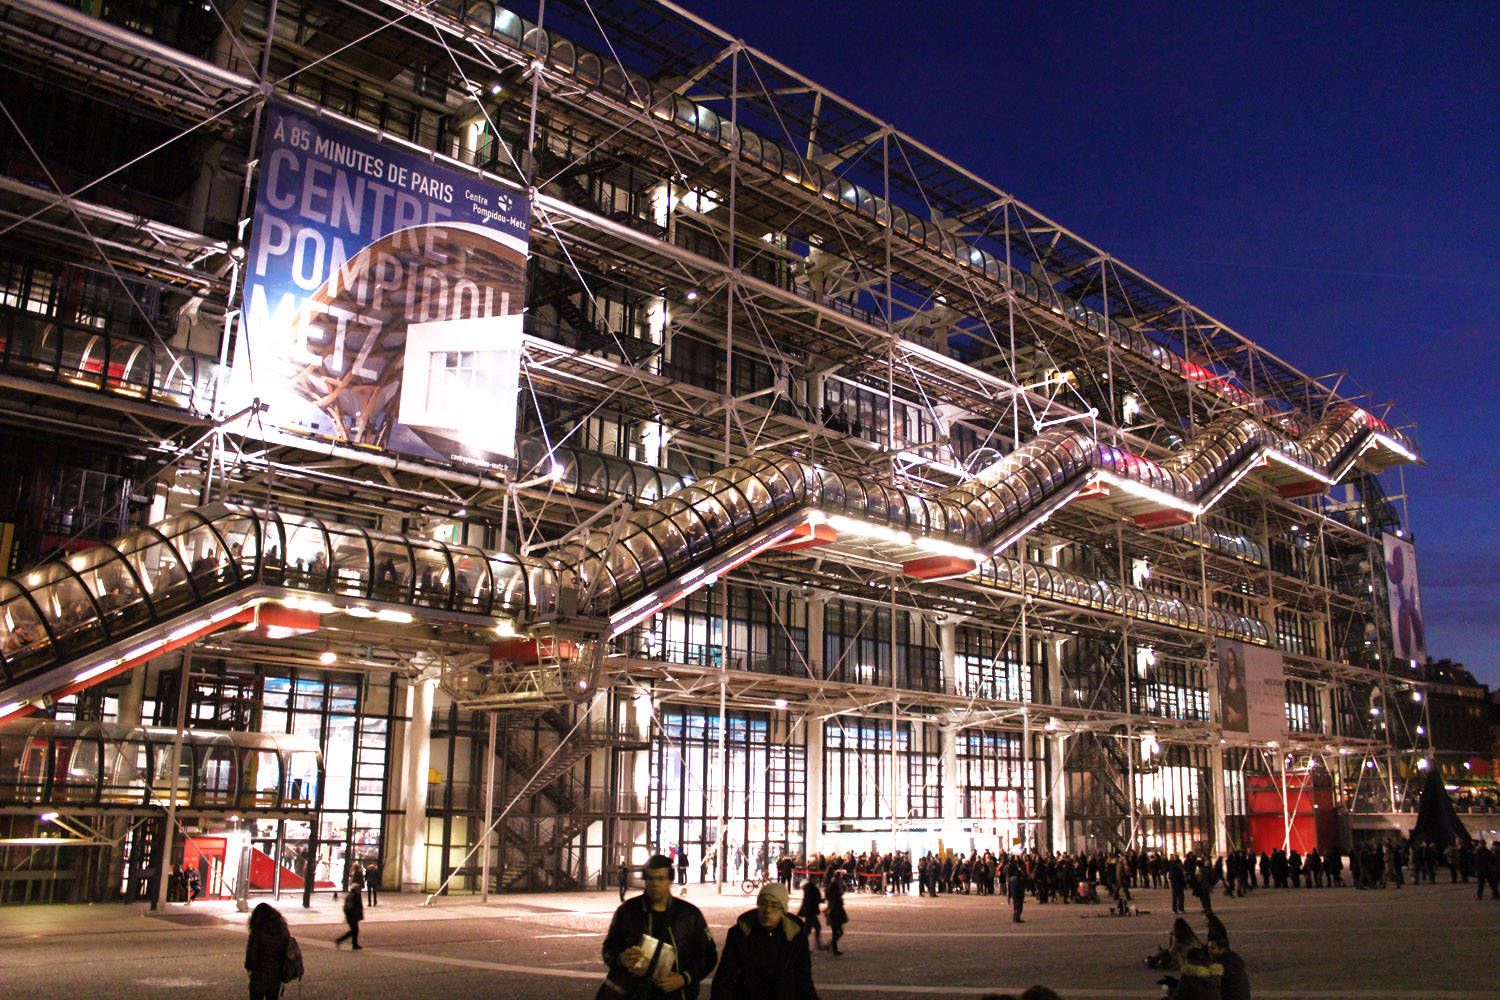 must-see museums in paris centre pompidou